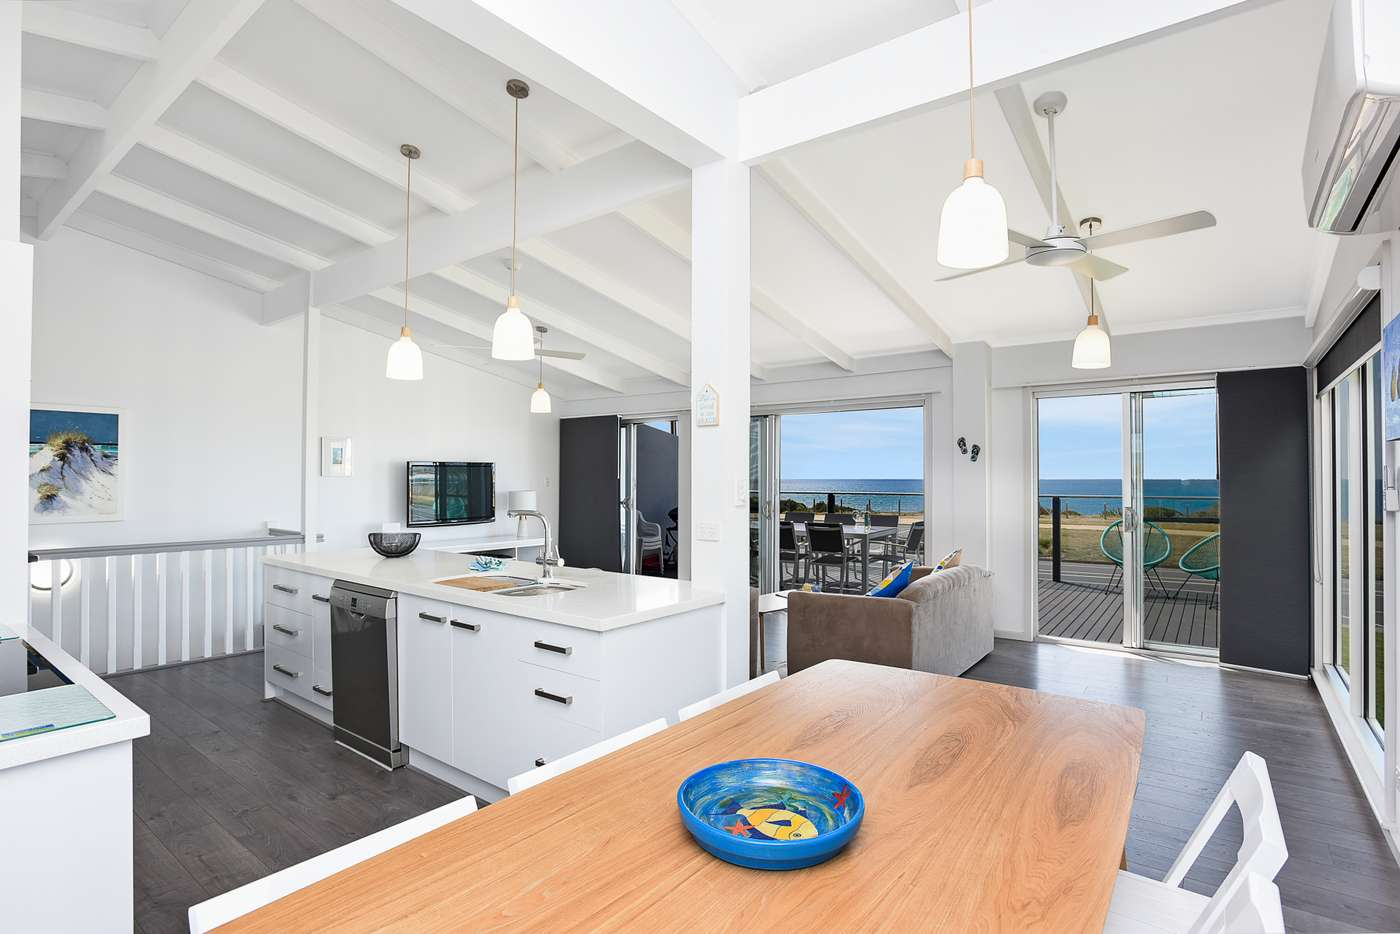 Sixth view of Homely house listing, 1/84 Esplanade, Aldinga Beach SA 5173